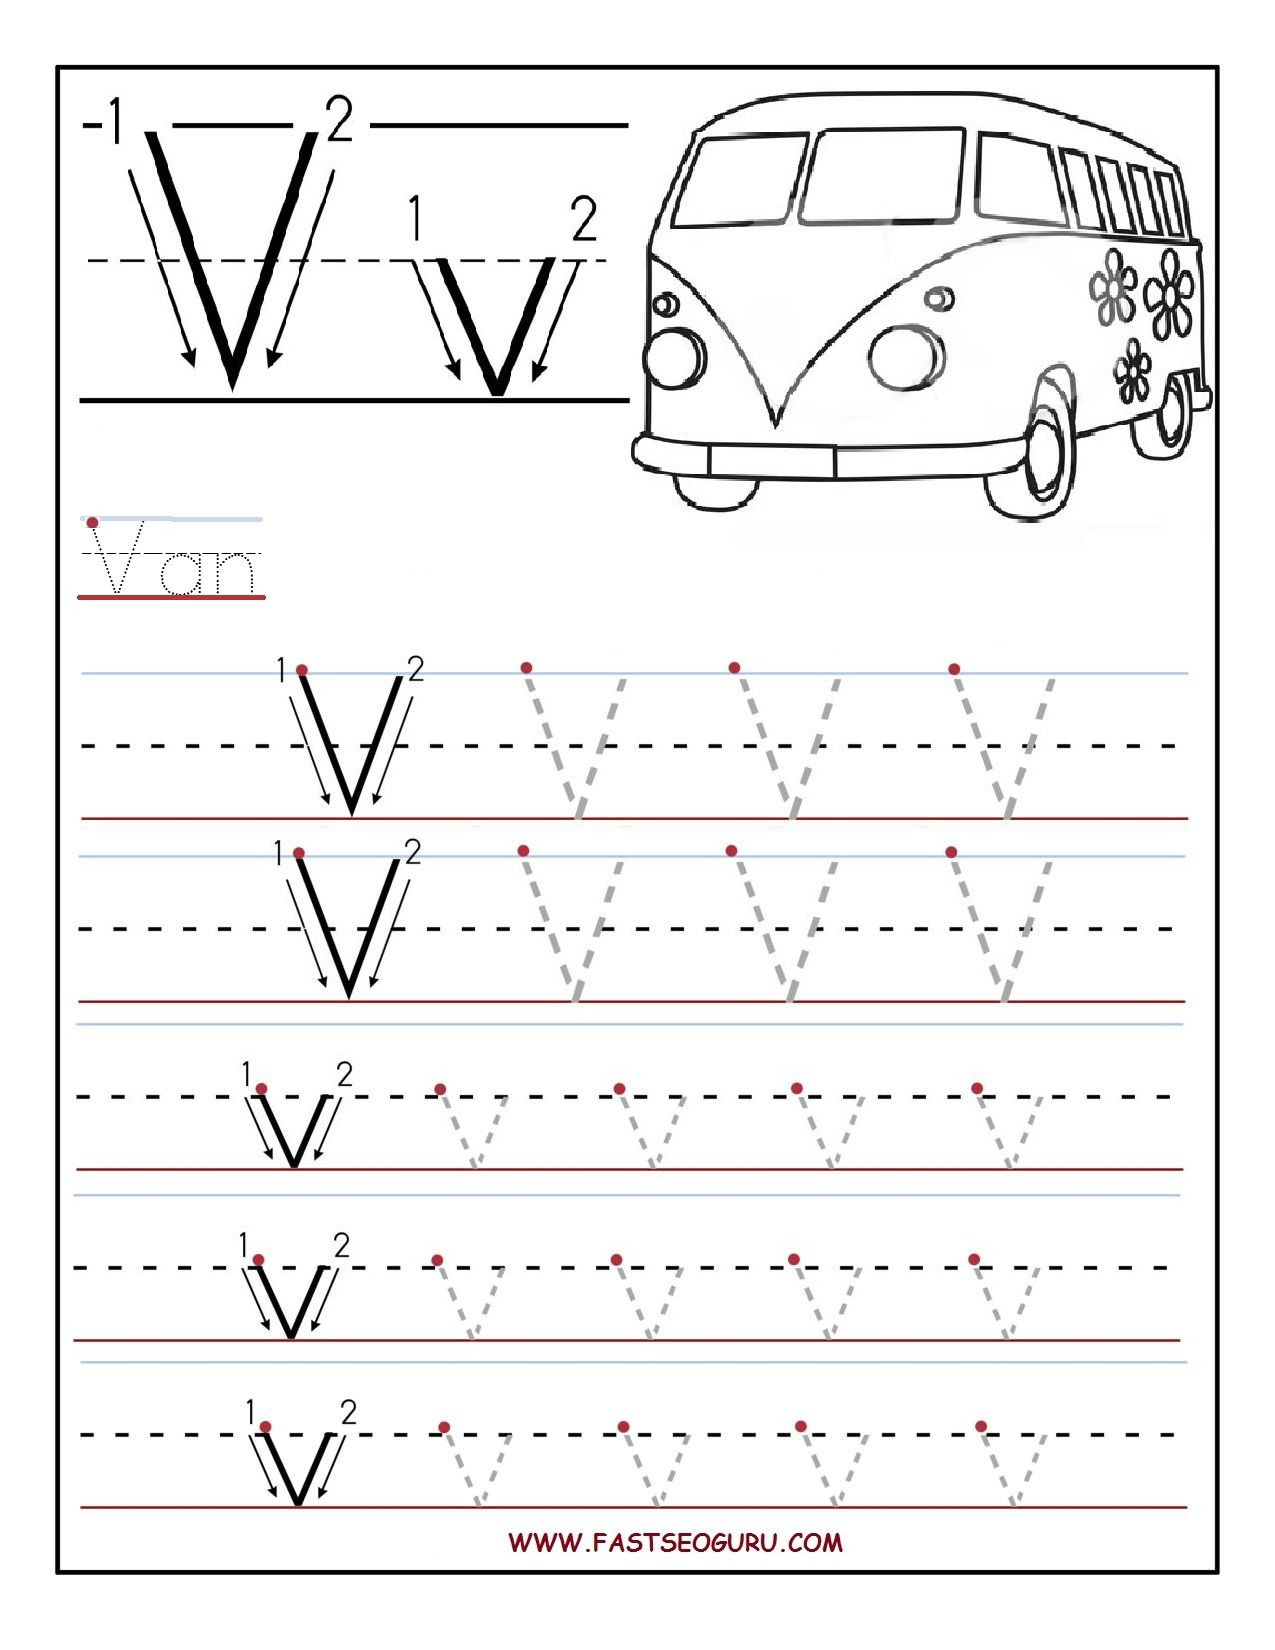 handwriting alphabet tracing